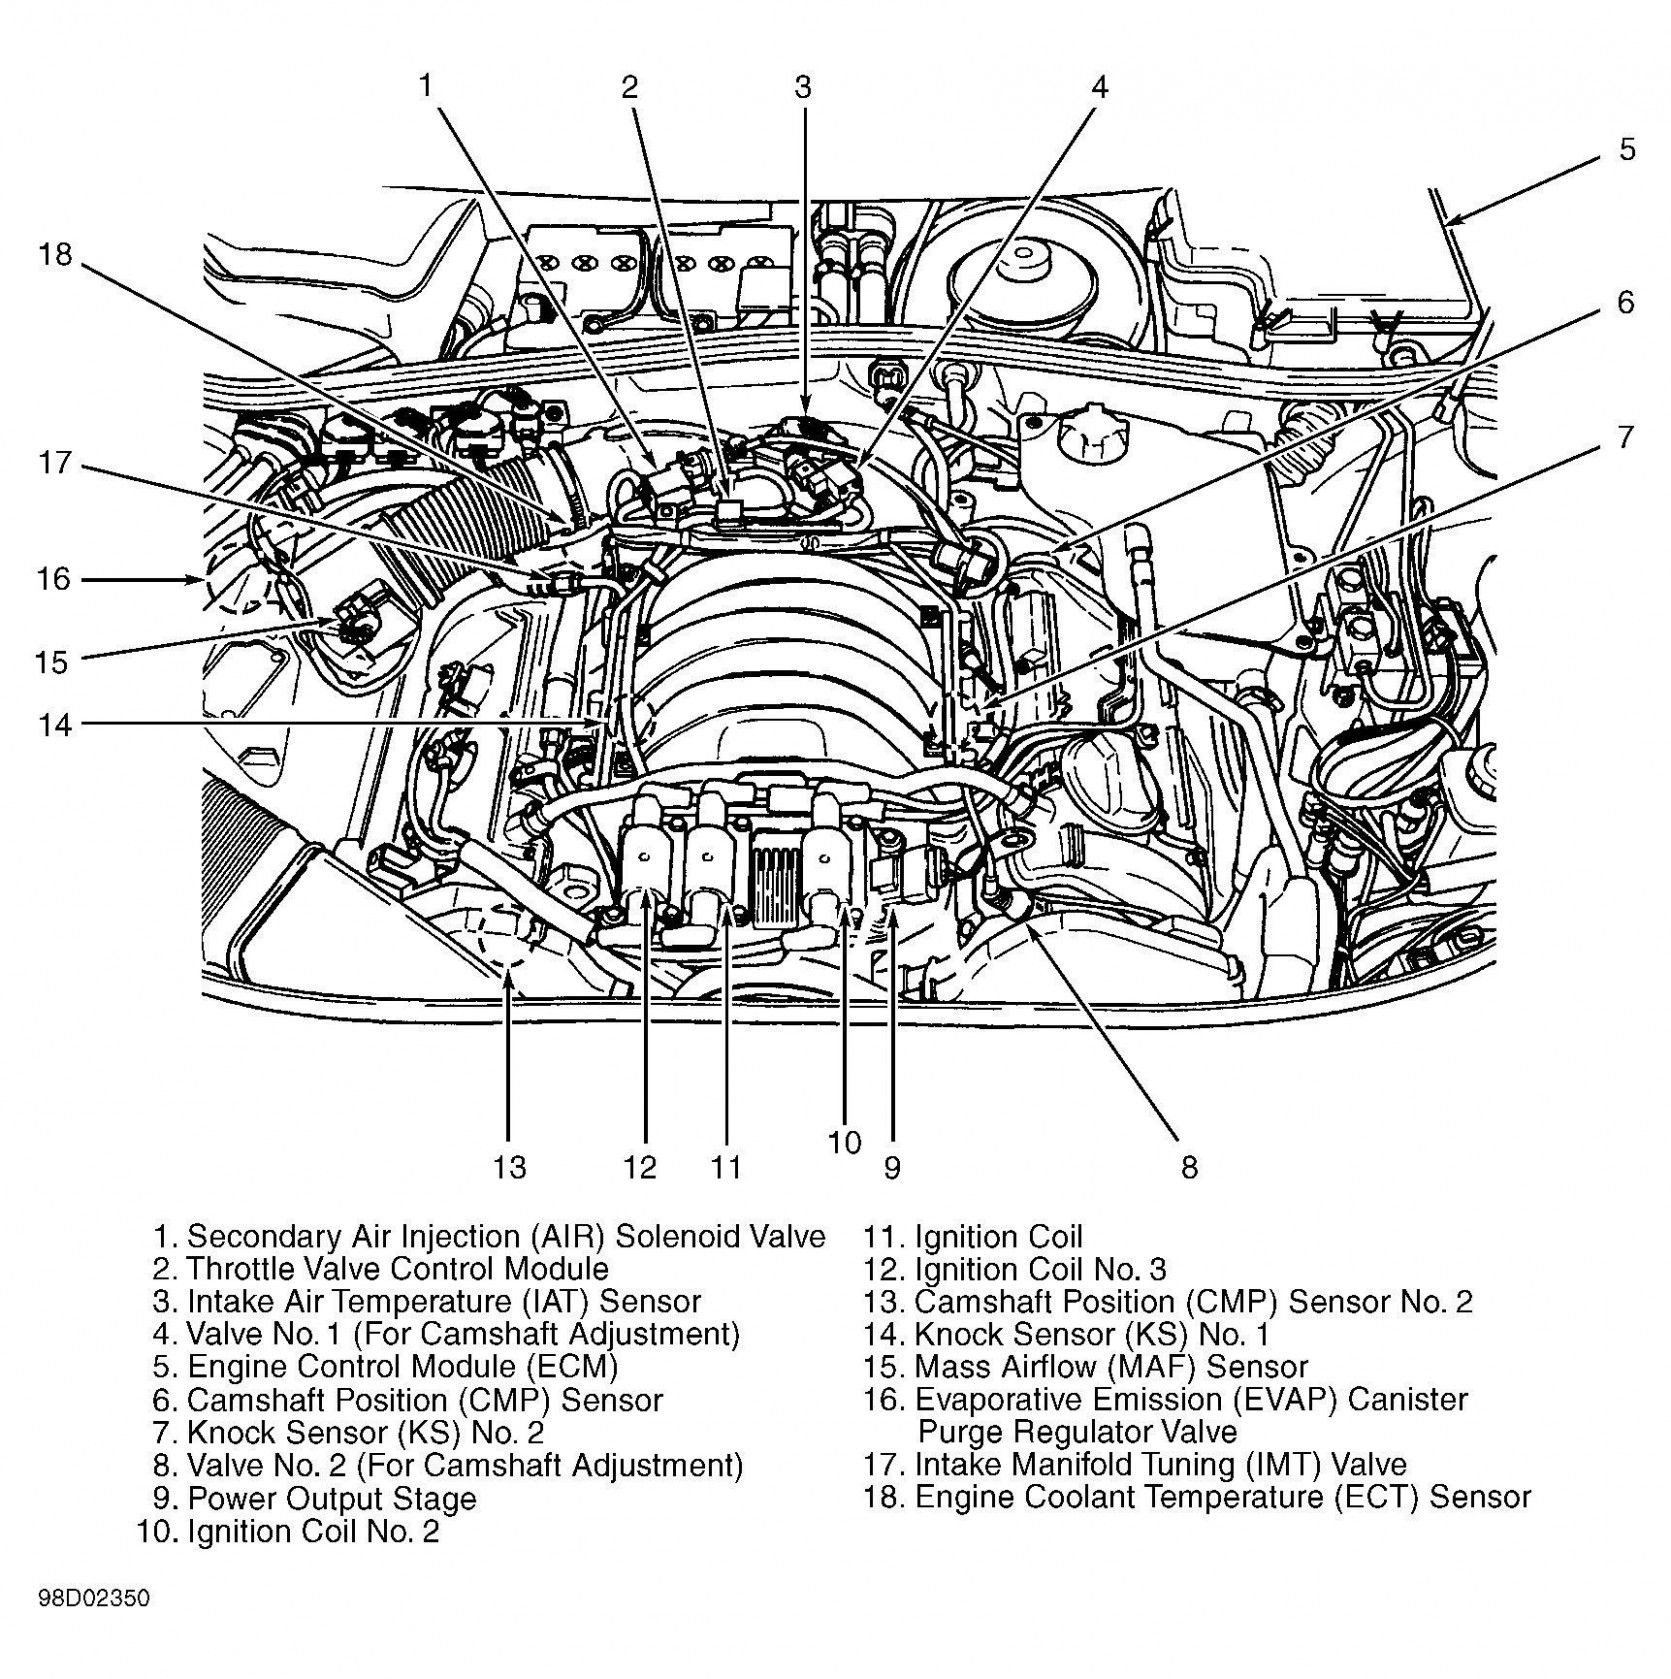 Jeep 6.6 Engine Diagram Uk di 2020Pinterest